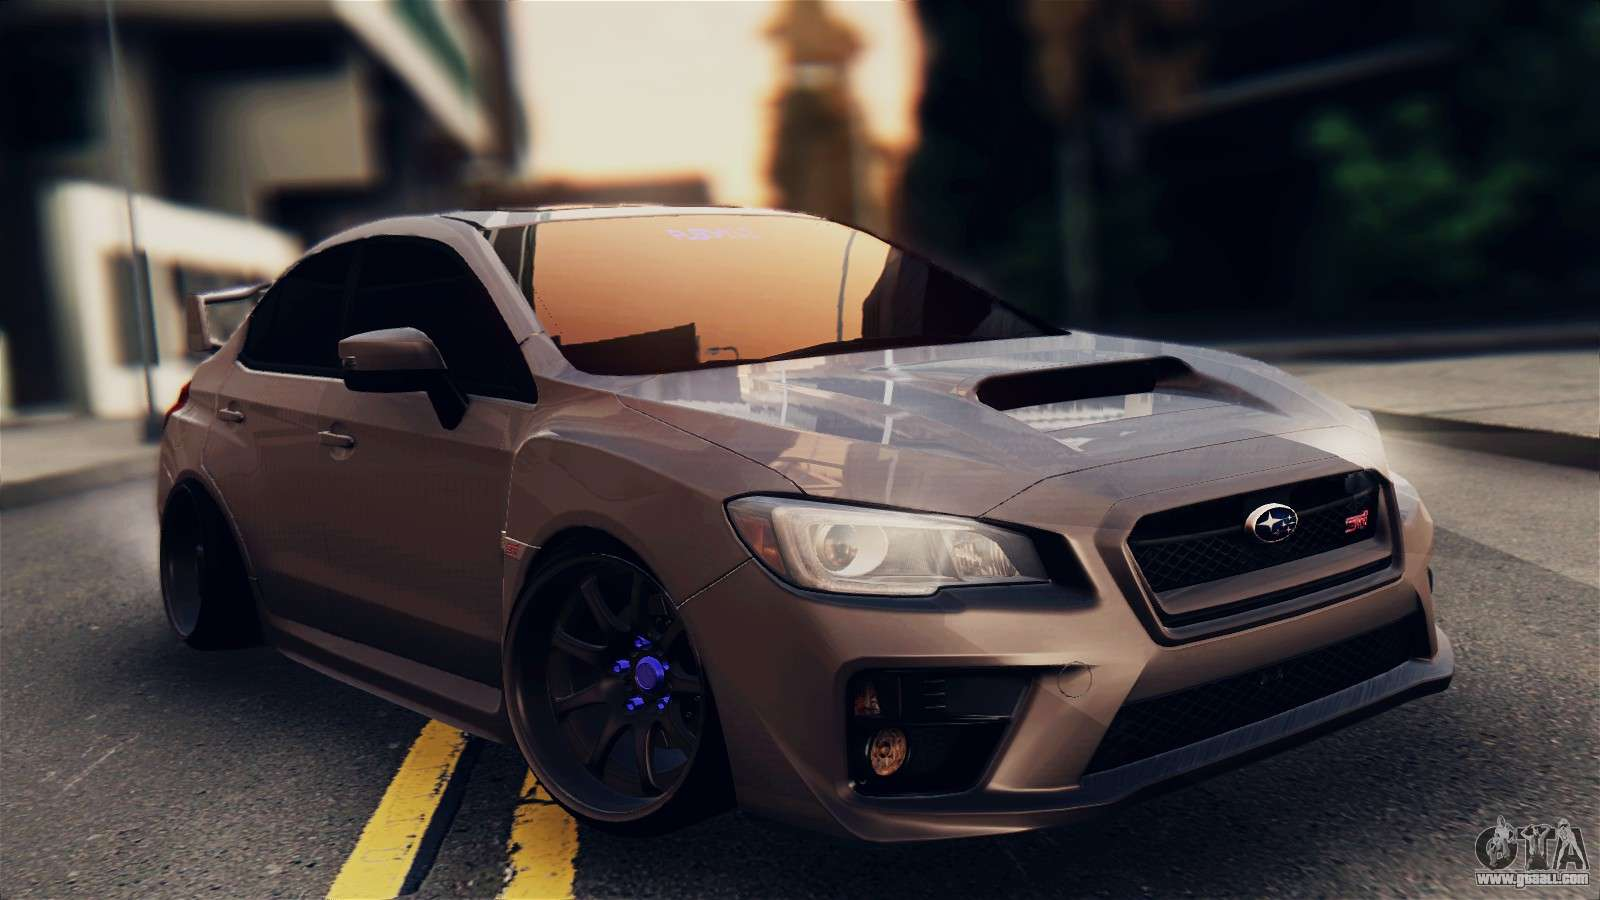 Subaru Impreza Wrx Sti 2015 For Gta San Andreas